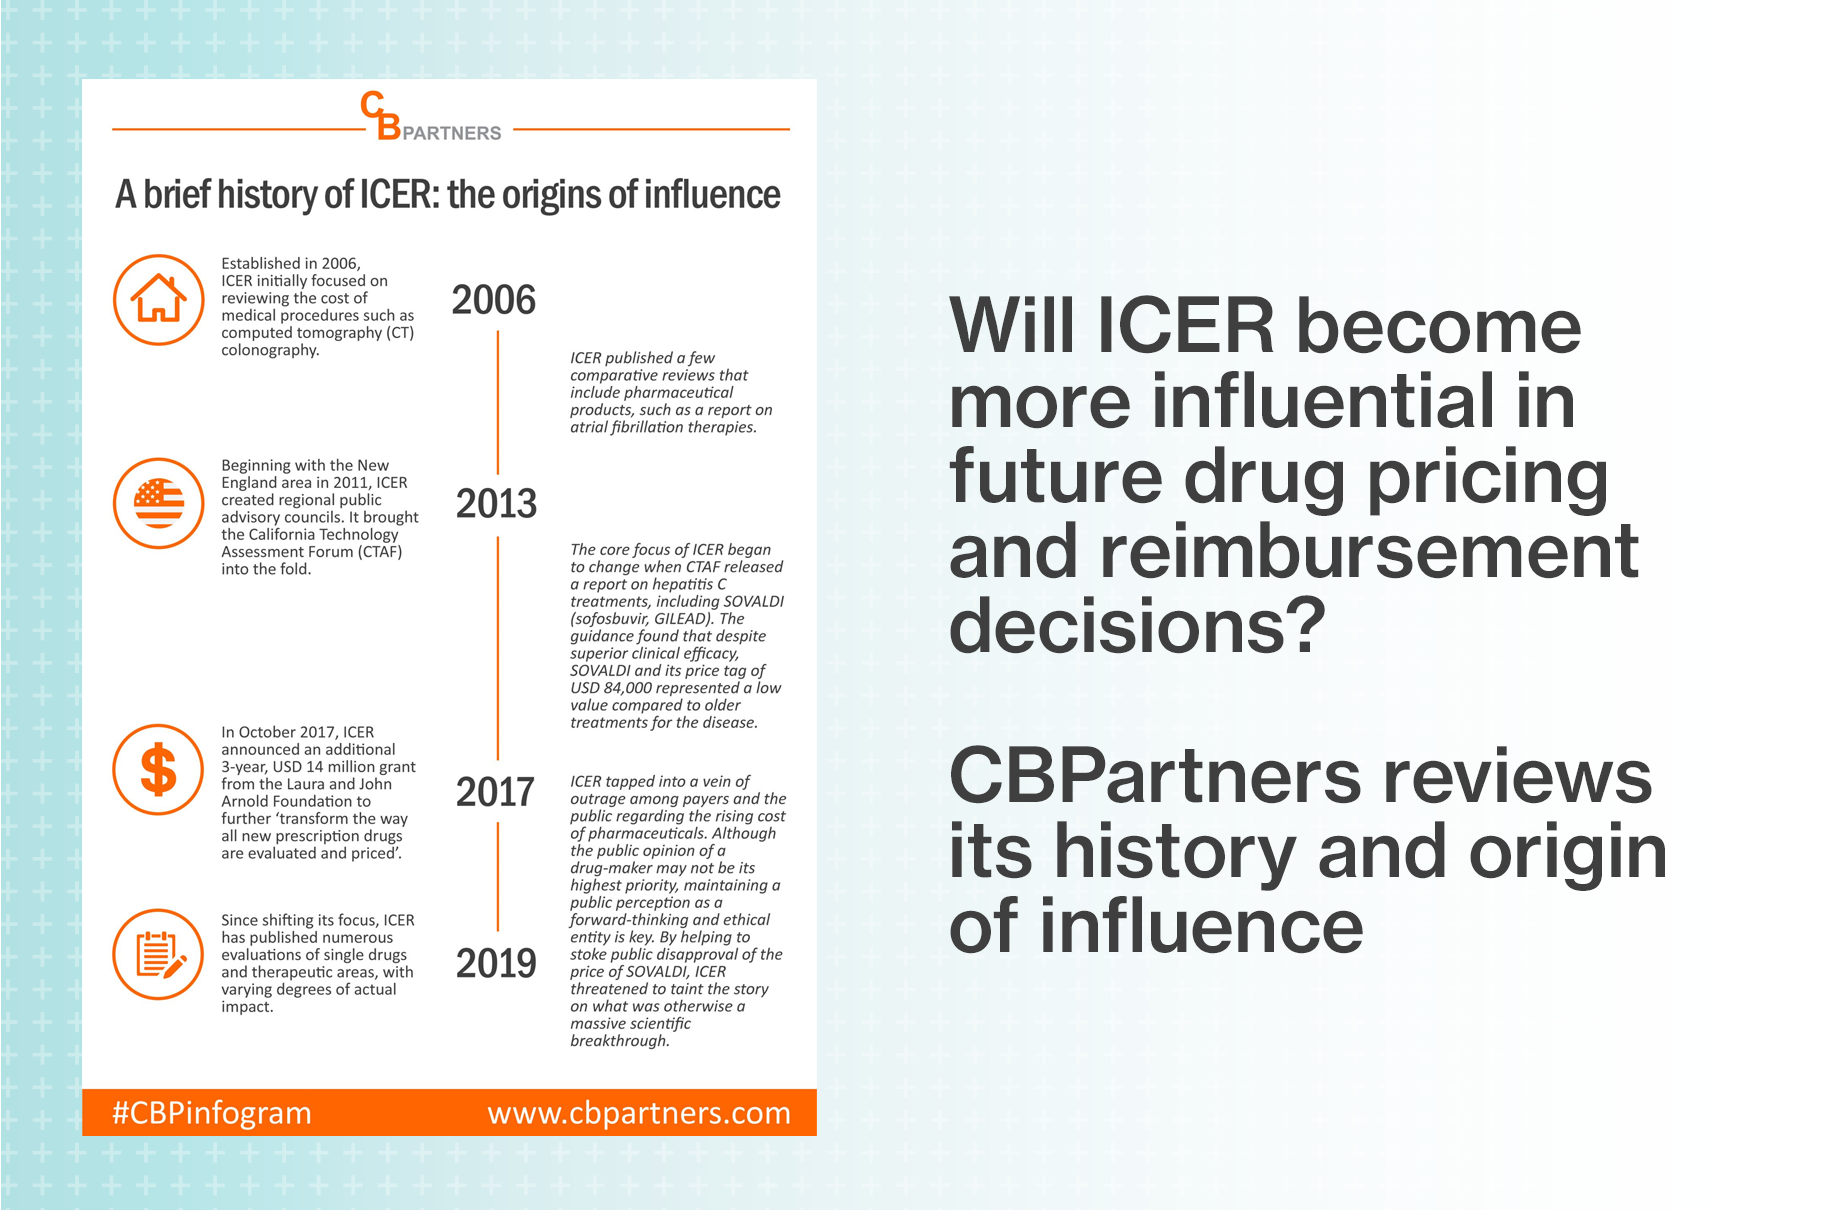 A history of ICER: The origins of influence infographic from CBPartners